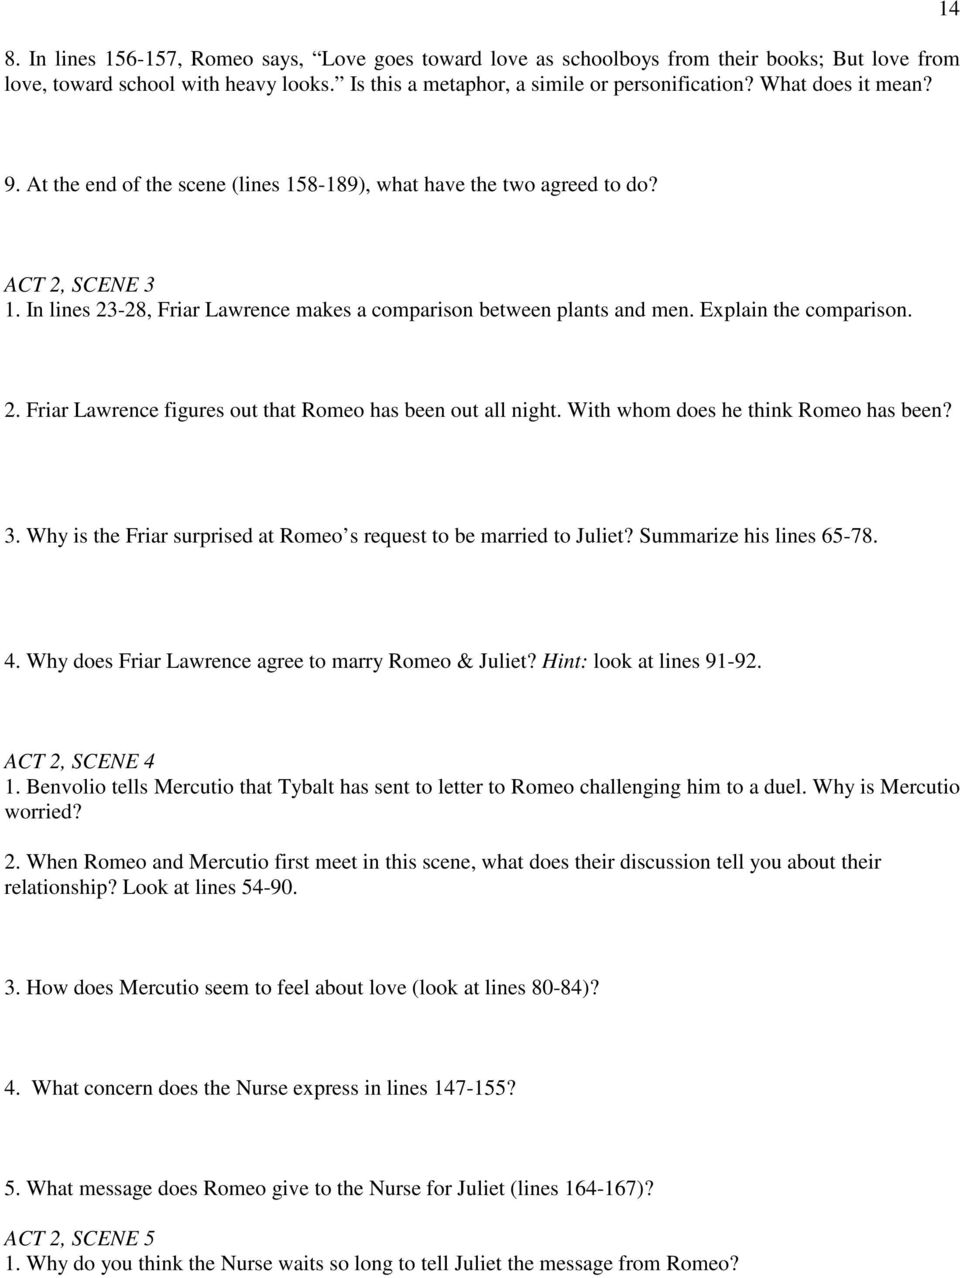 romeo and juliet act 2 scene 4 questions and answers